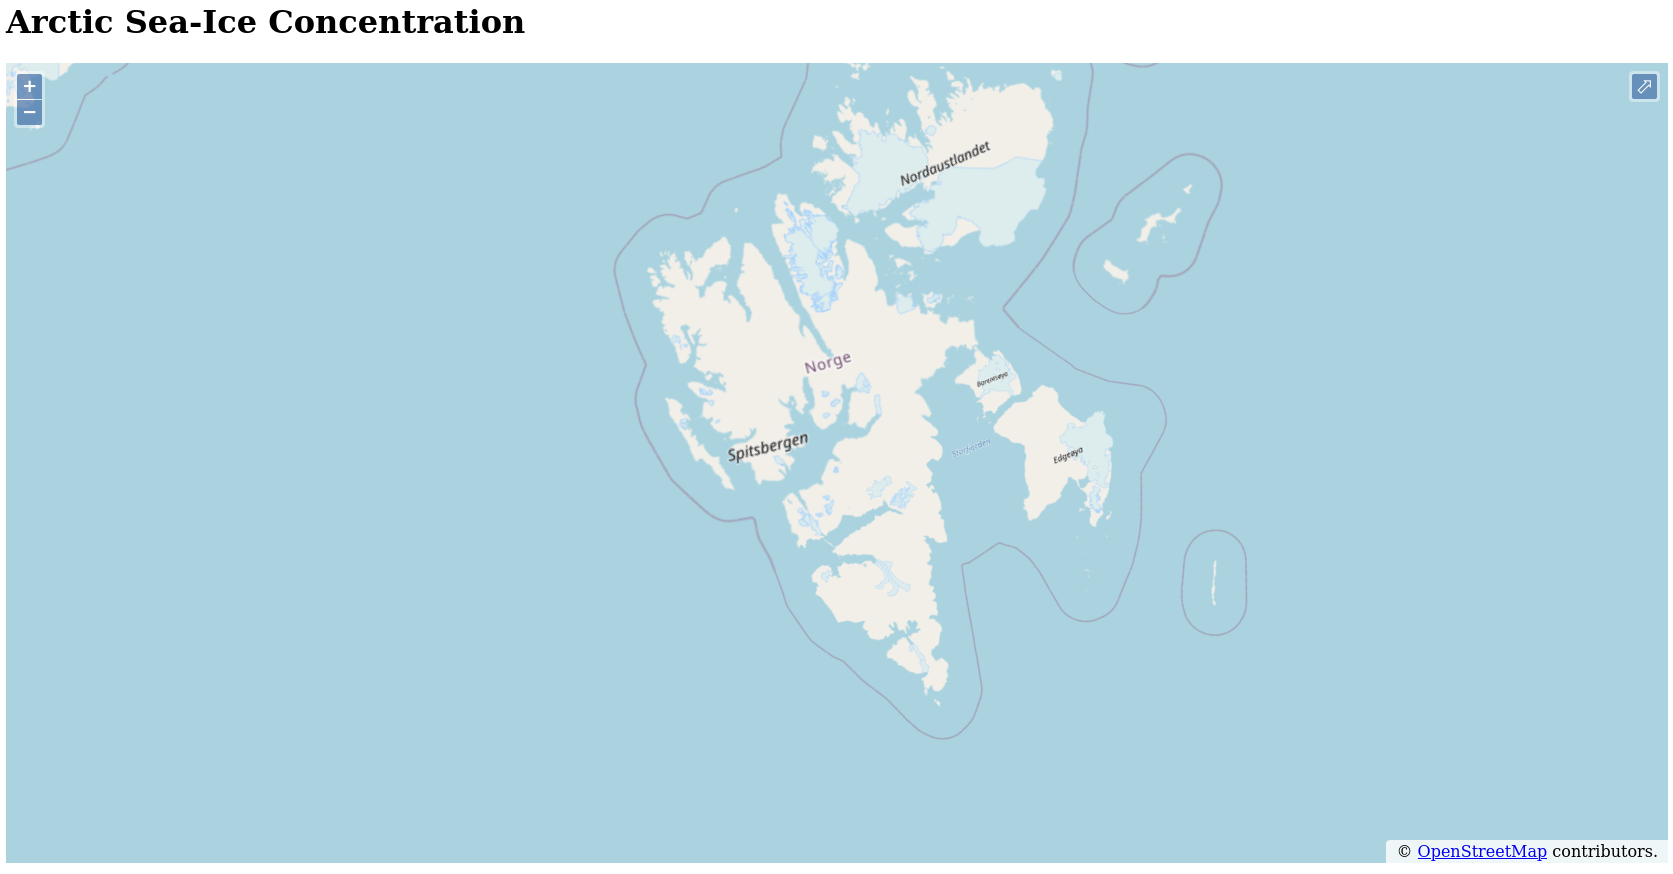 Svalbard-focussed map